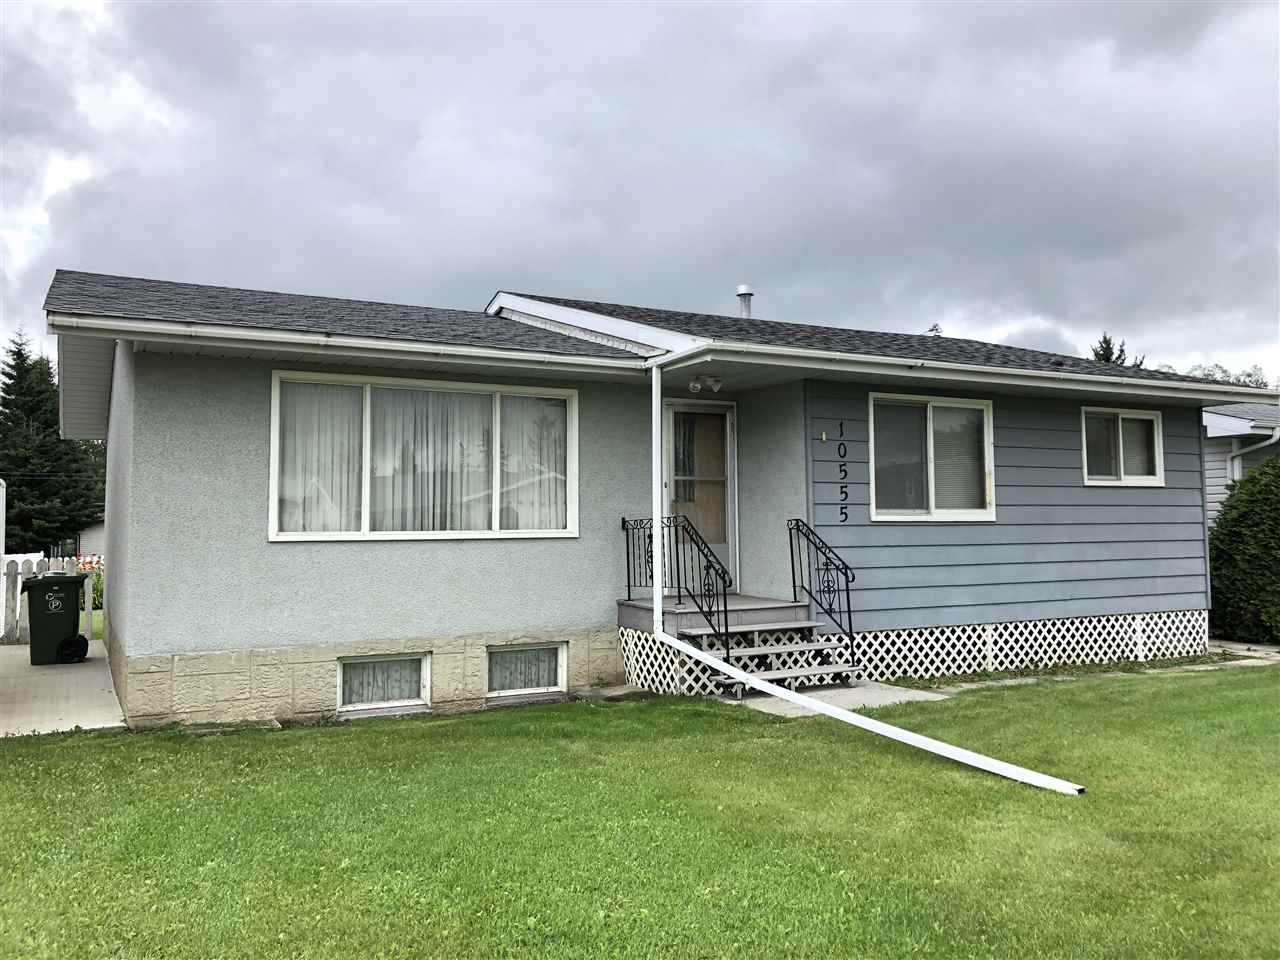 1202 sq.ft - 3+2 bedroom bungalow in nearly original condition.  Older mahogany kitchen cupboards and mill-work. Main-floor laundry!  Built-in china cabinet. Ready for your decorating touches. Basement has 2 bedrooms and a 3-piece bathroom, rest is unfinished.  Extra-deep lot fenced on 2 sides.  Single 14x24 garage.